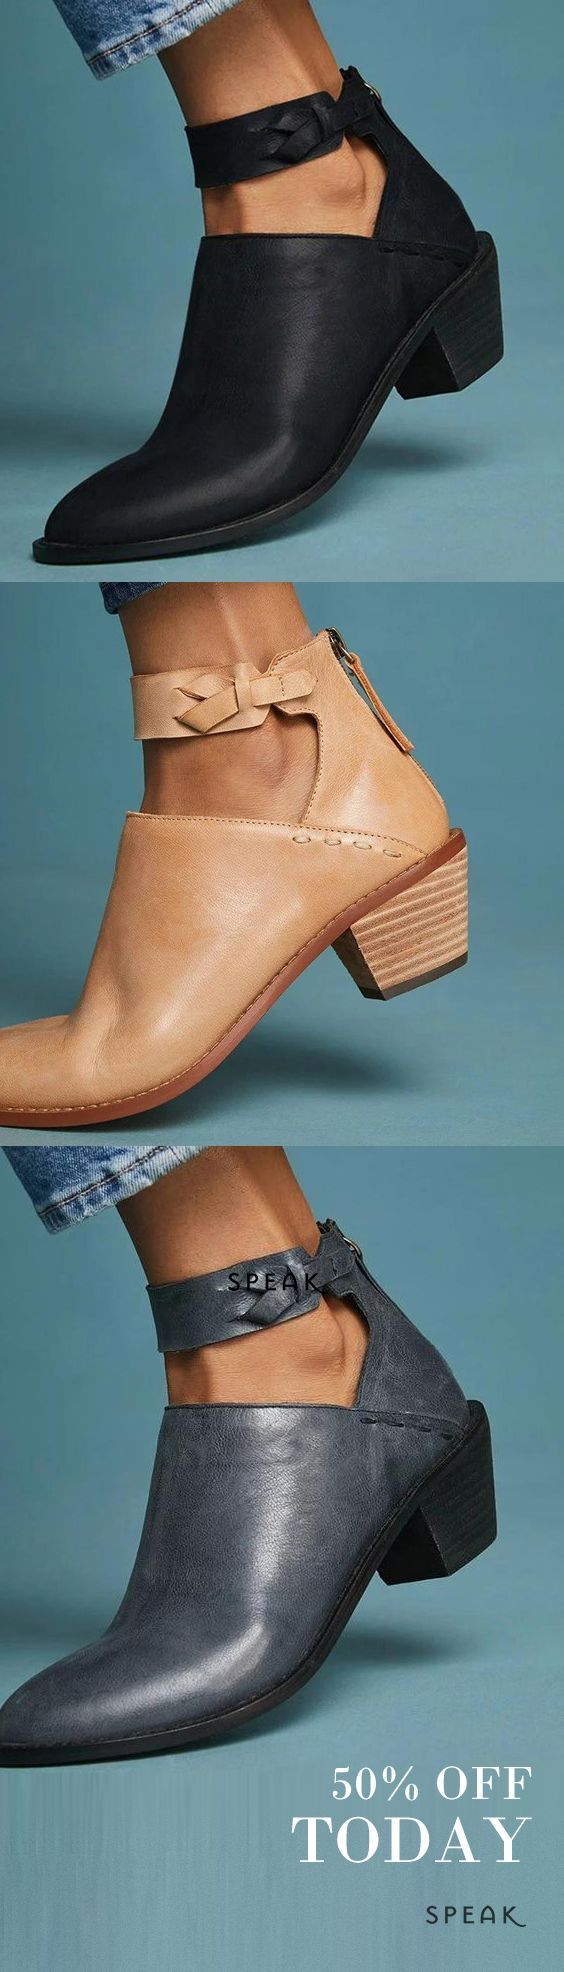 Ankle-Strap Heels - 50% off today. The cutest boots, heels, shoes, loafers and m... 2